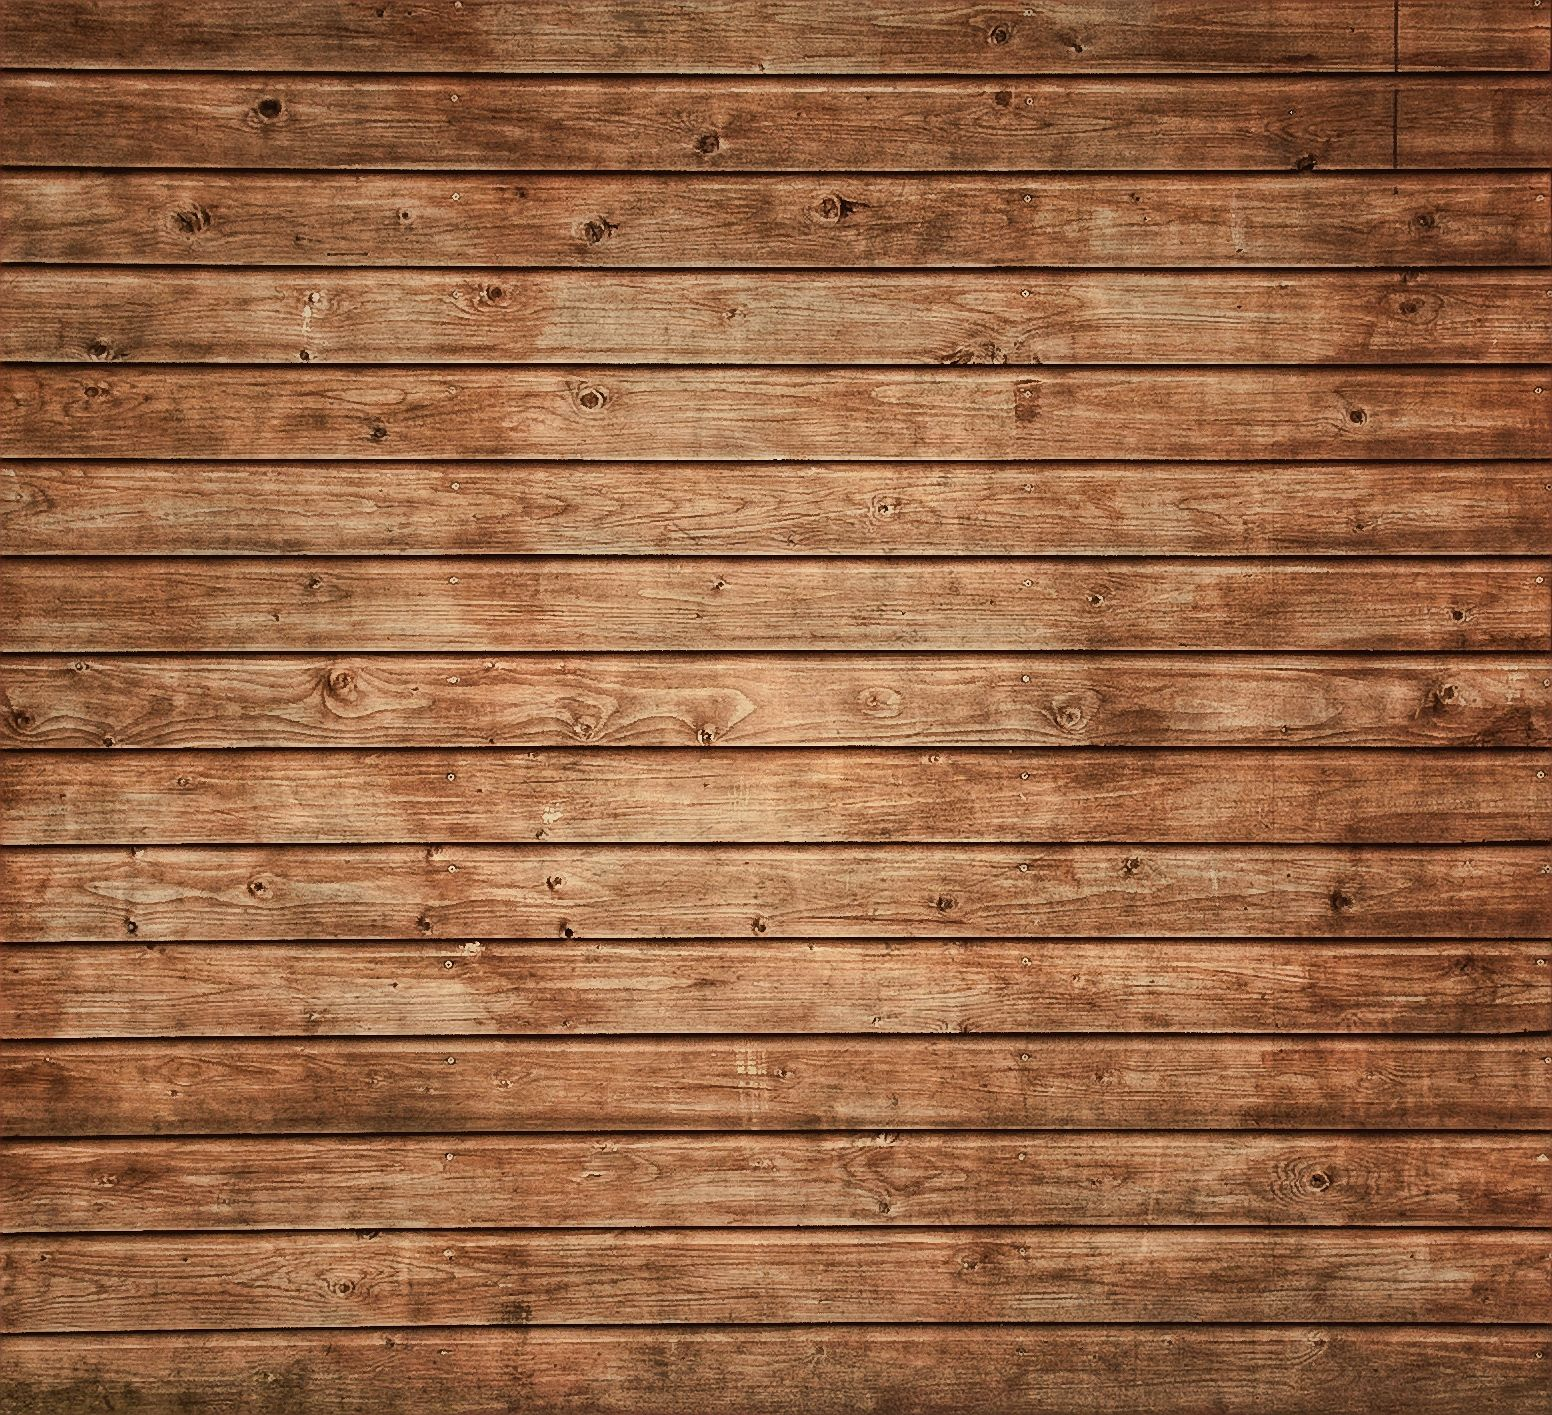 textures-wallpapers-free-wood-texture-grunge-wood | First Baptist ...